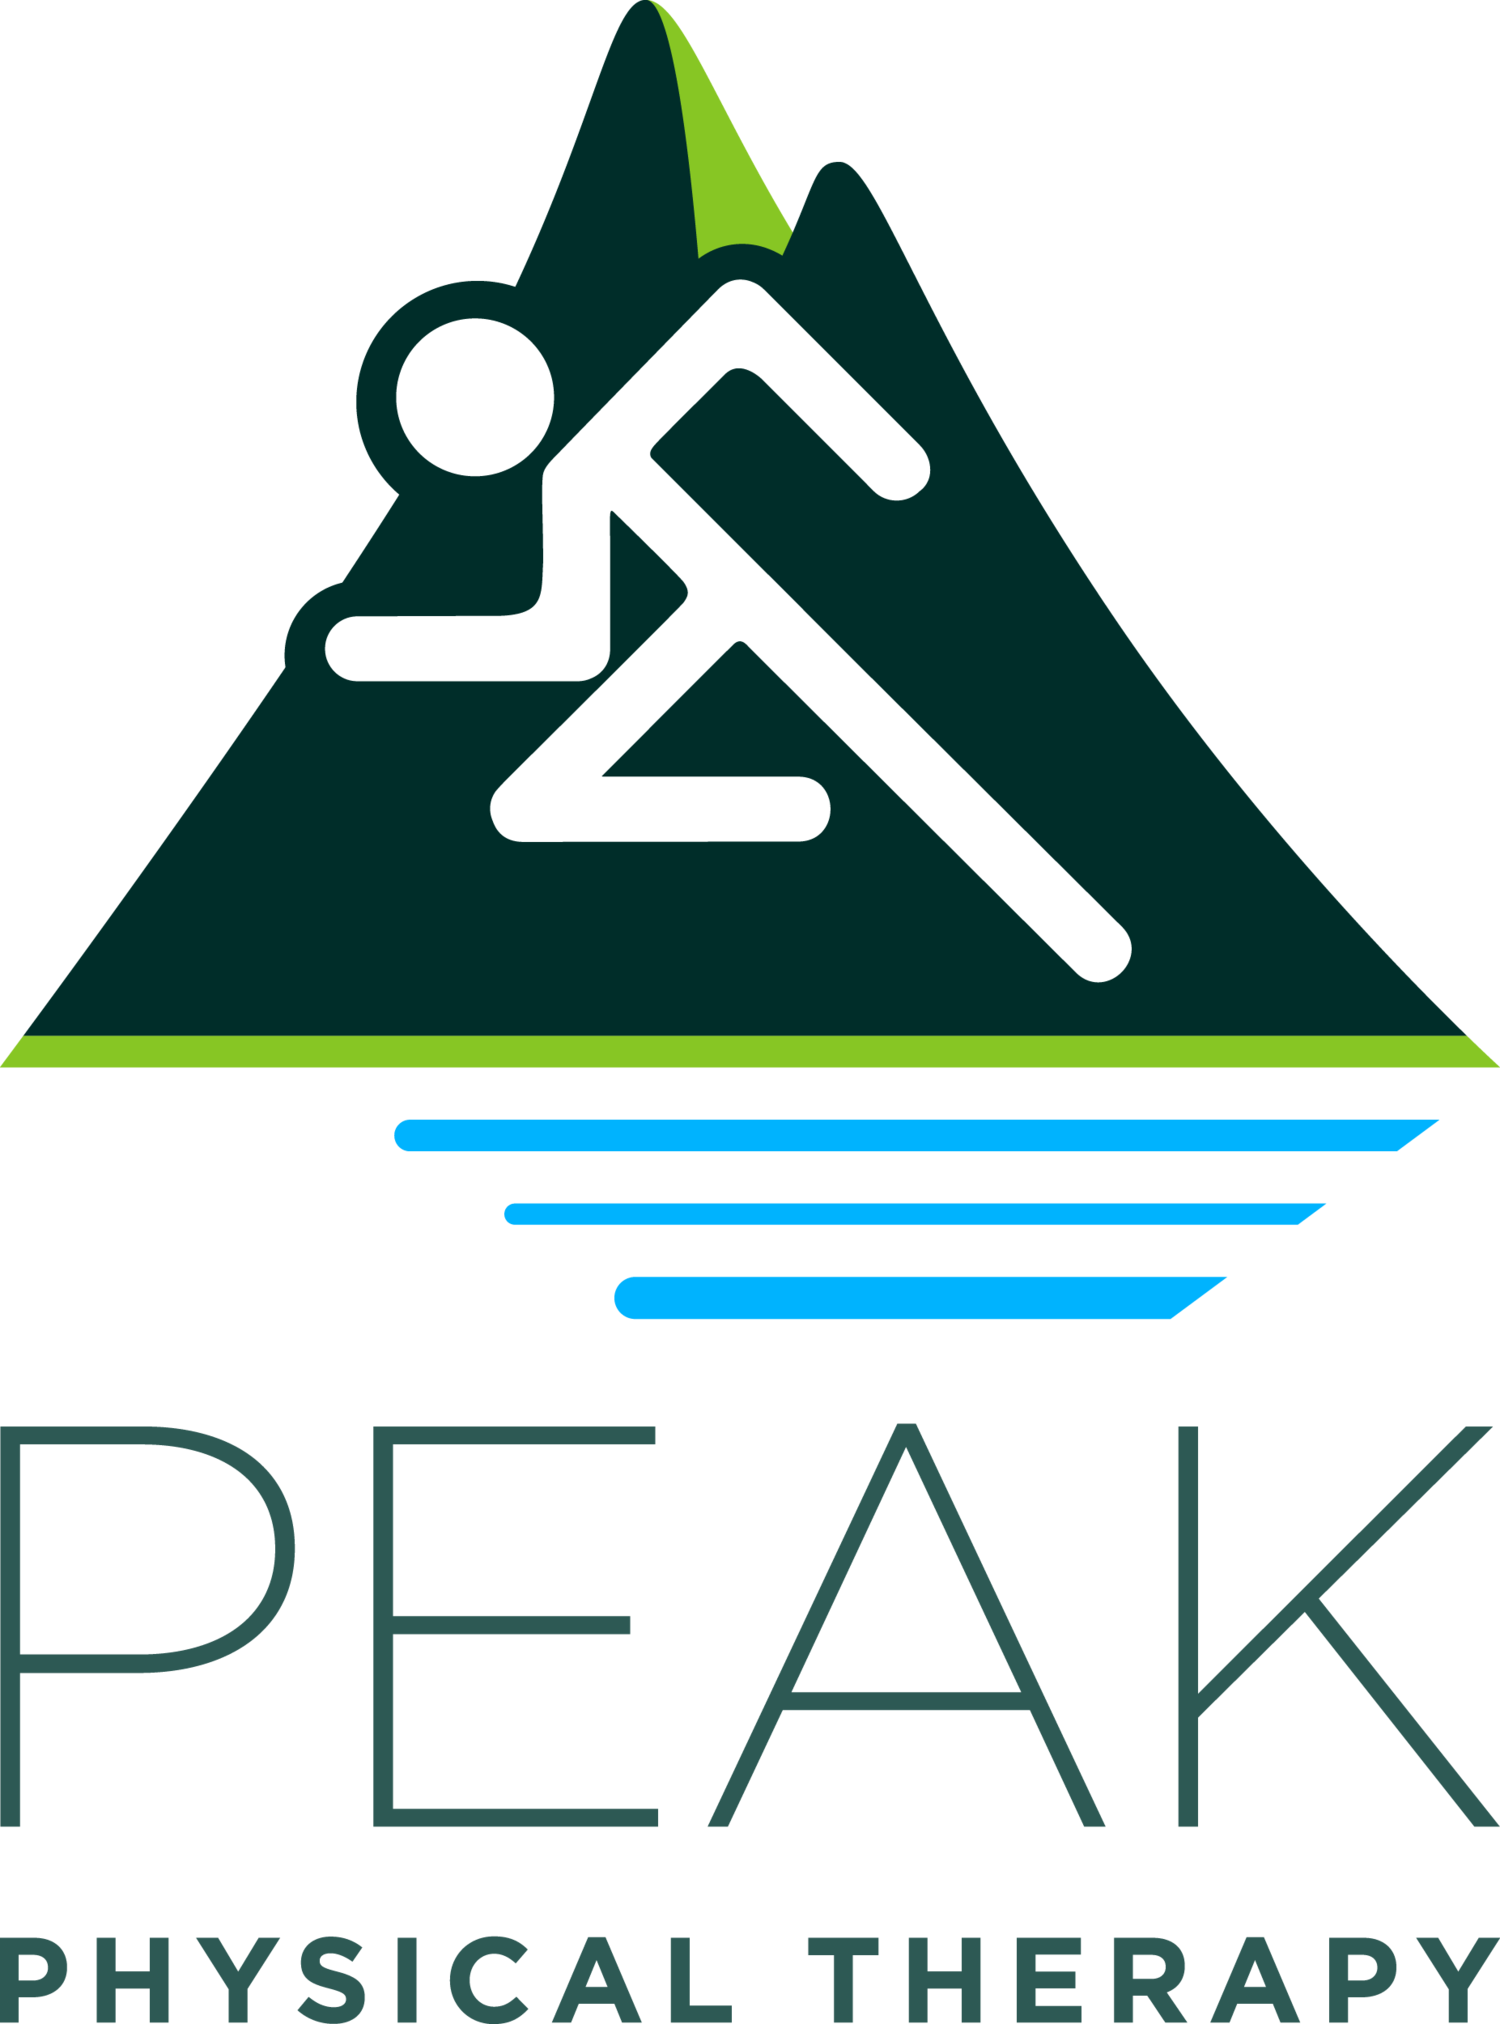 PEAK Physical Therapy P.C.